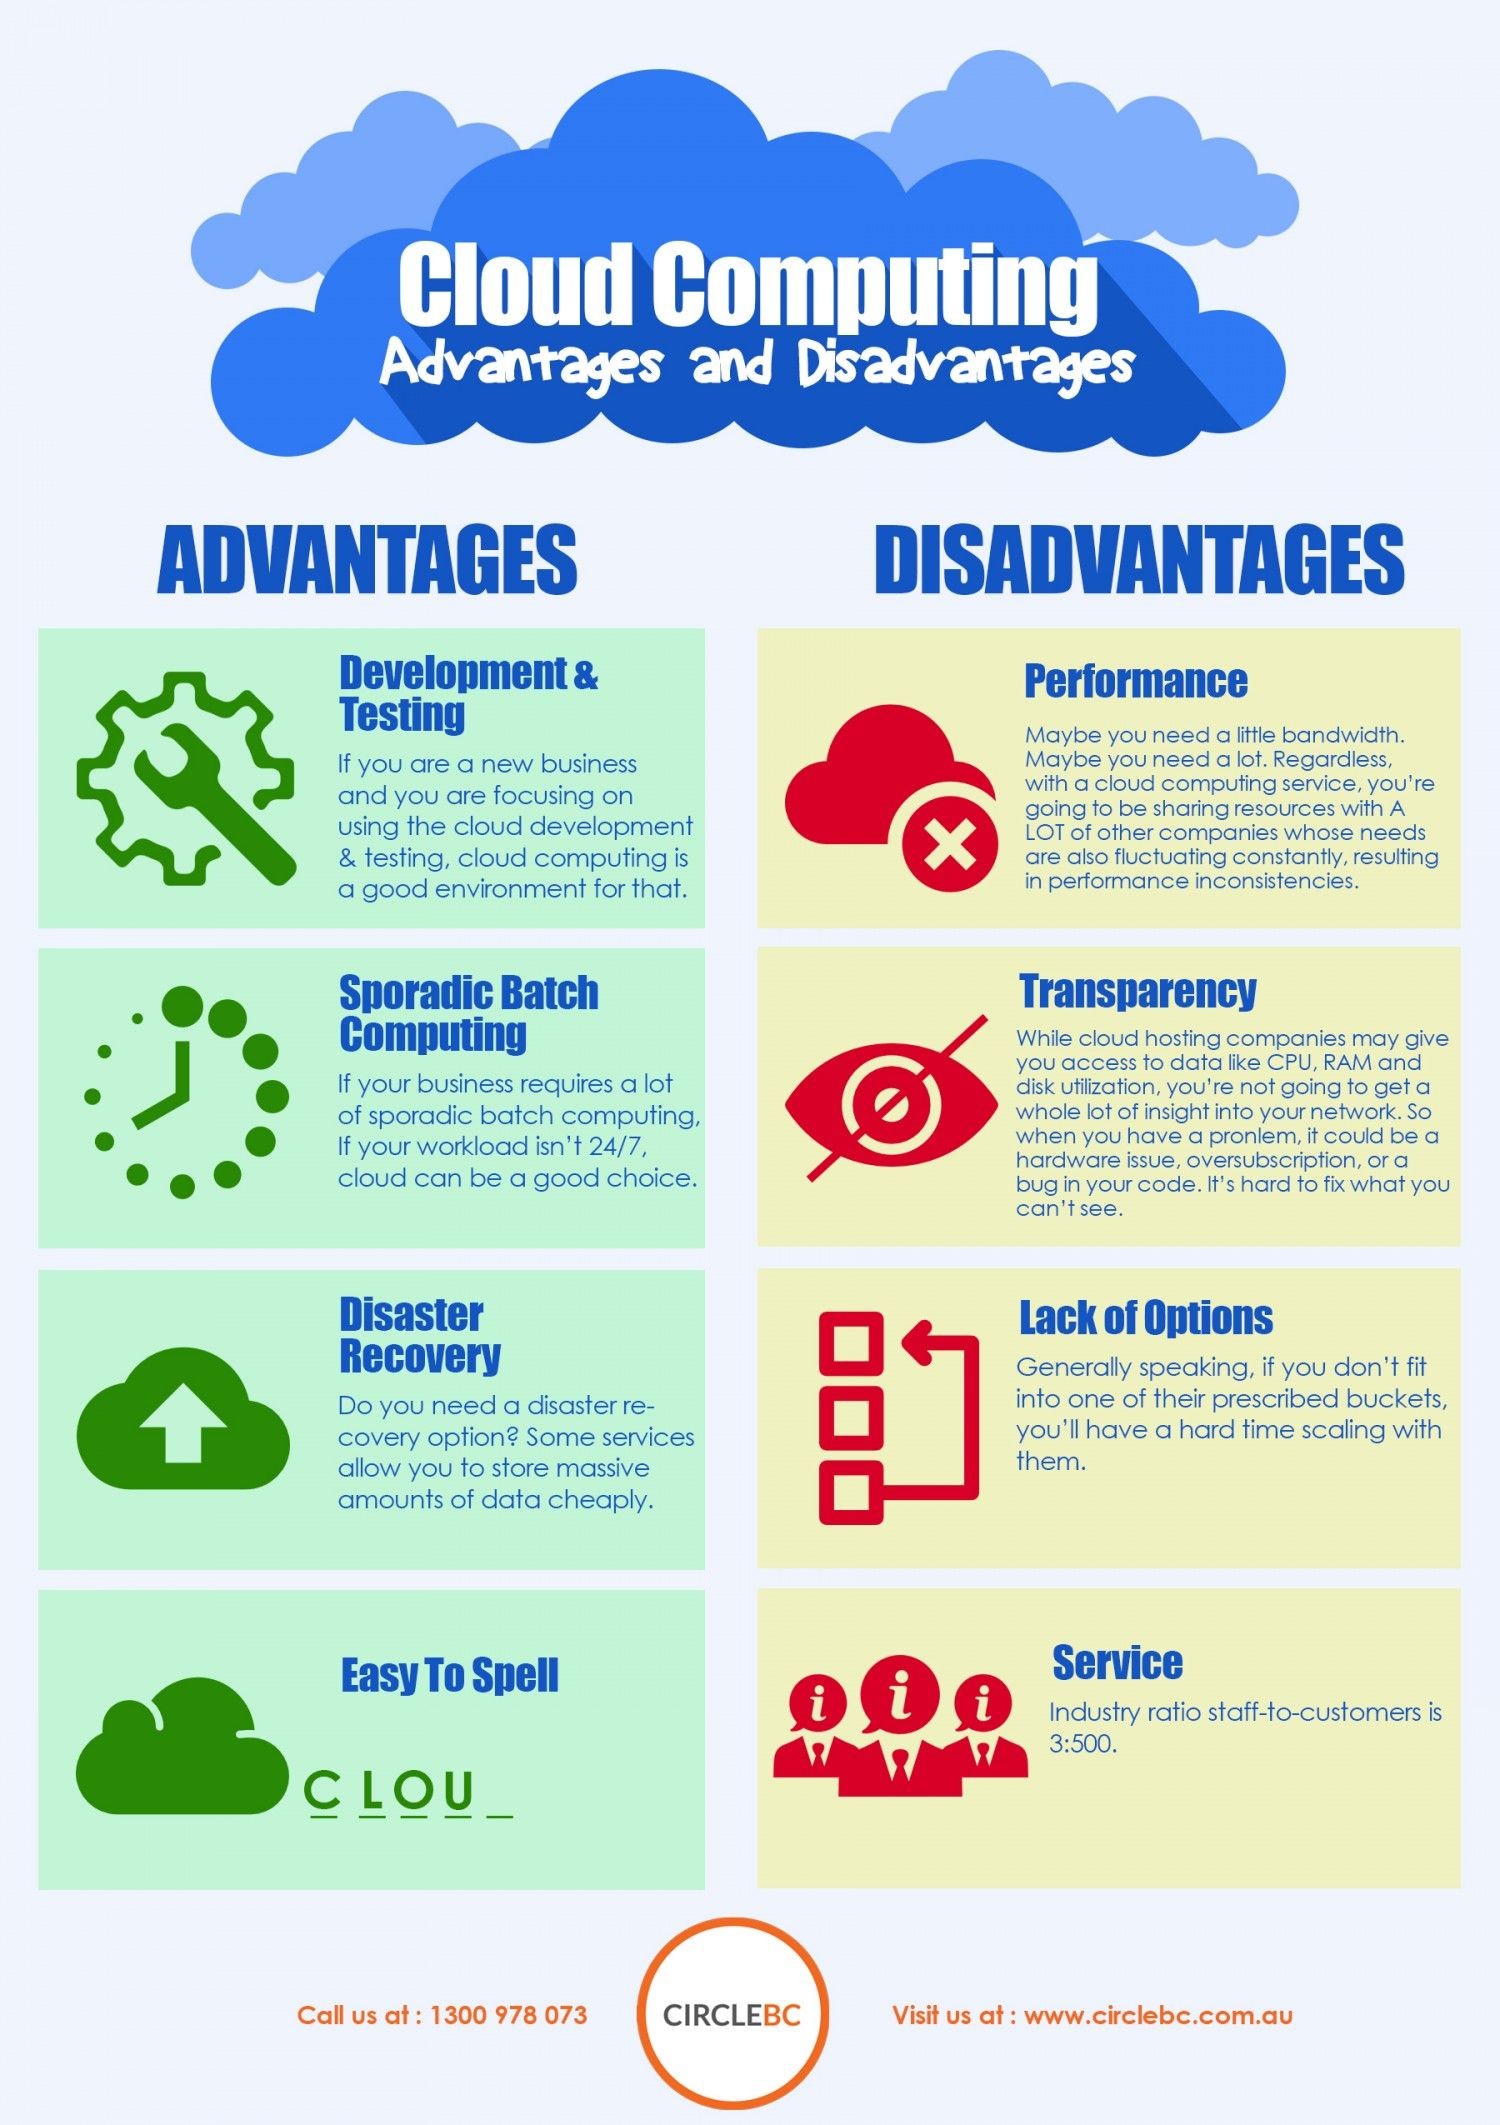 Cloud Computing Advantages And Disadvantages Infographic